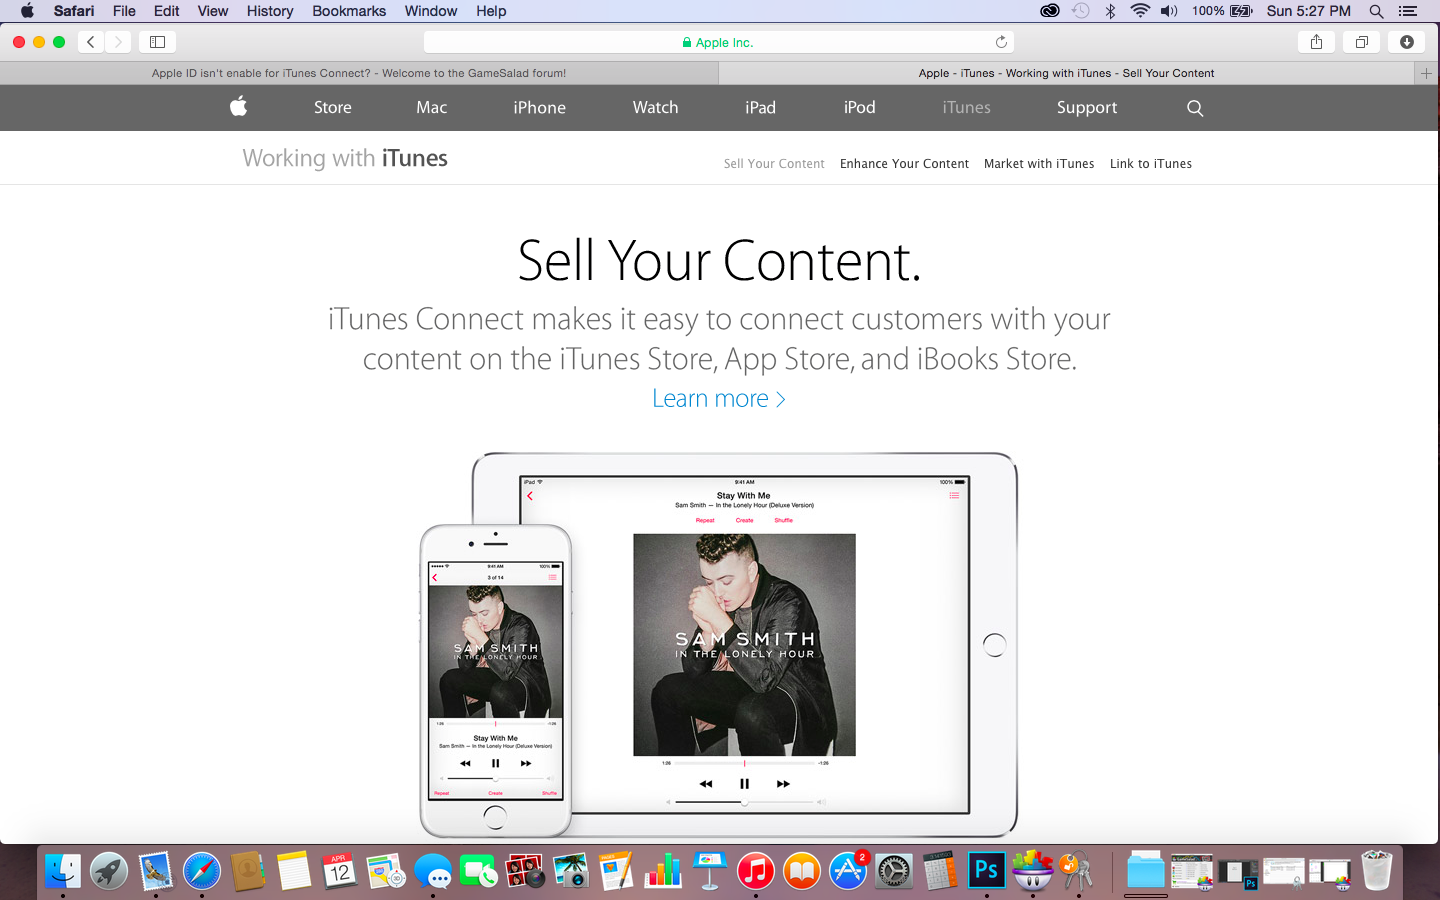 Apple ID isn't enable for iTunes Connect? — Welcome to the